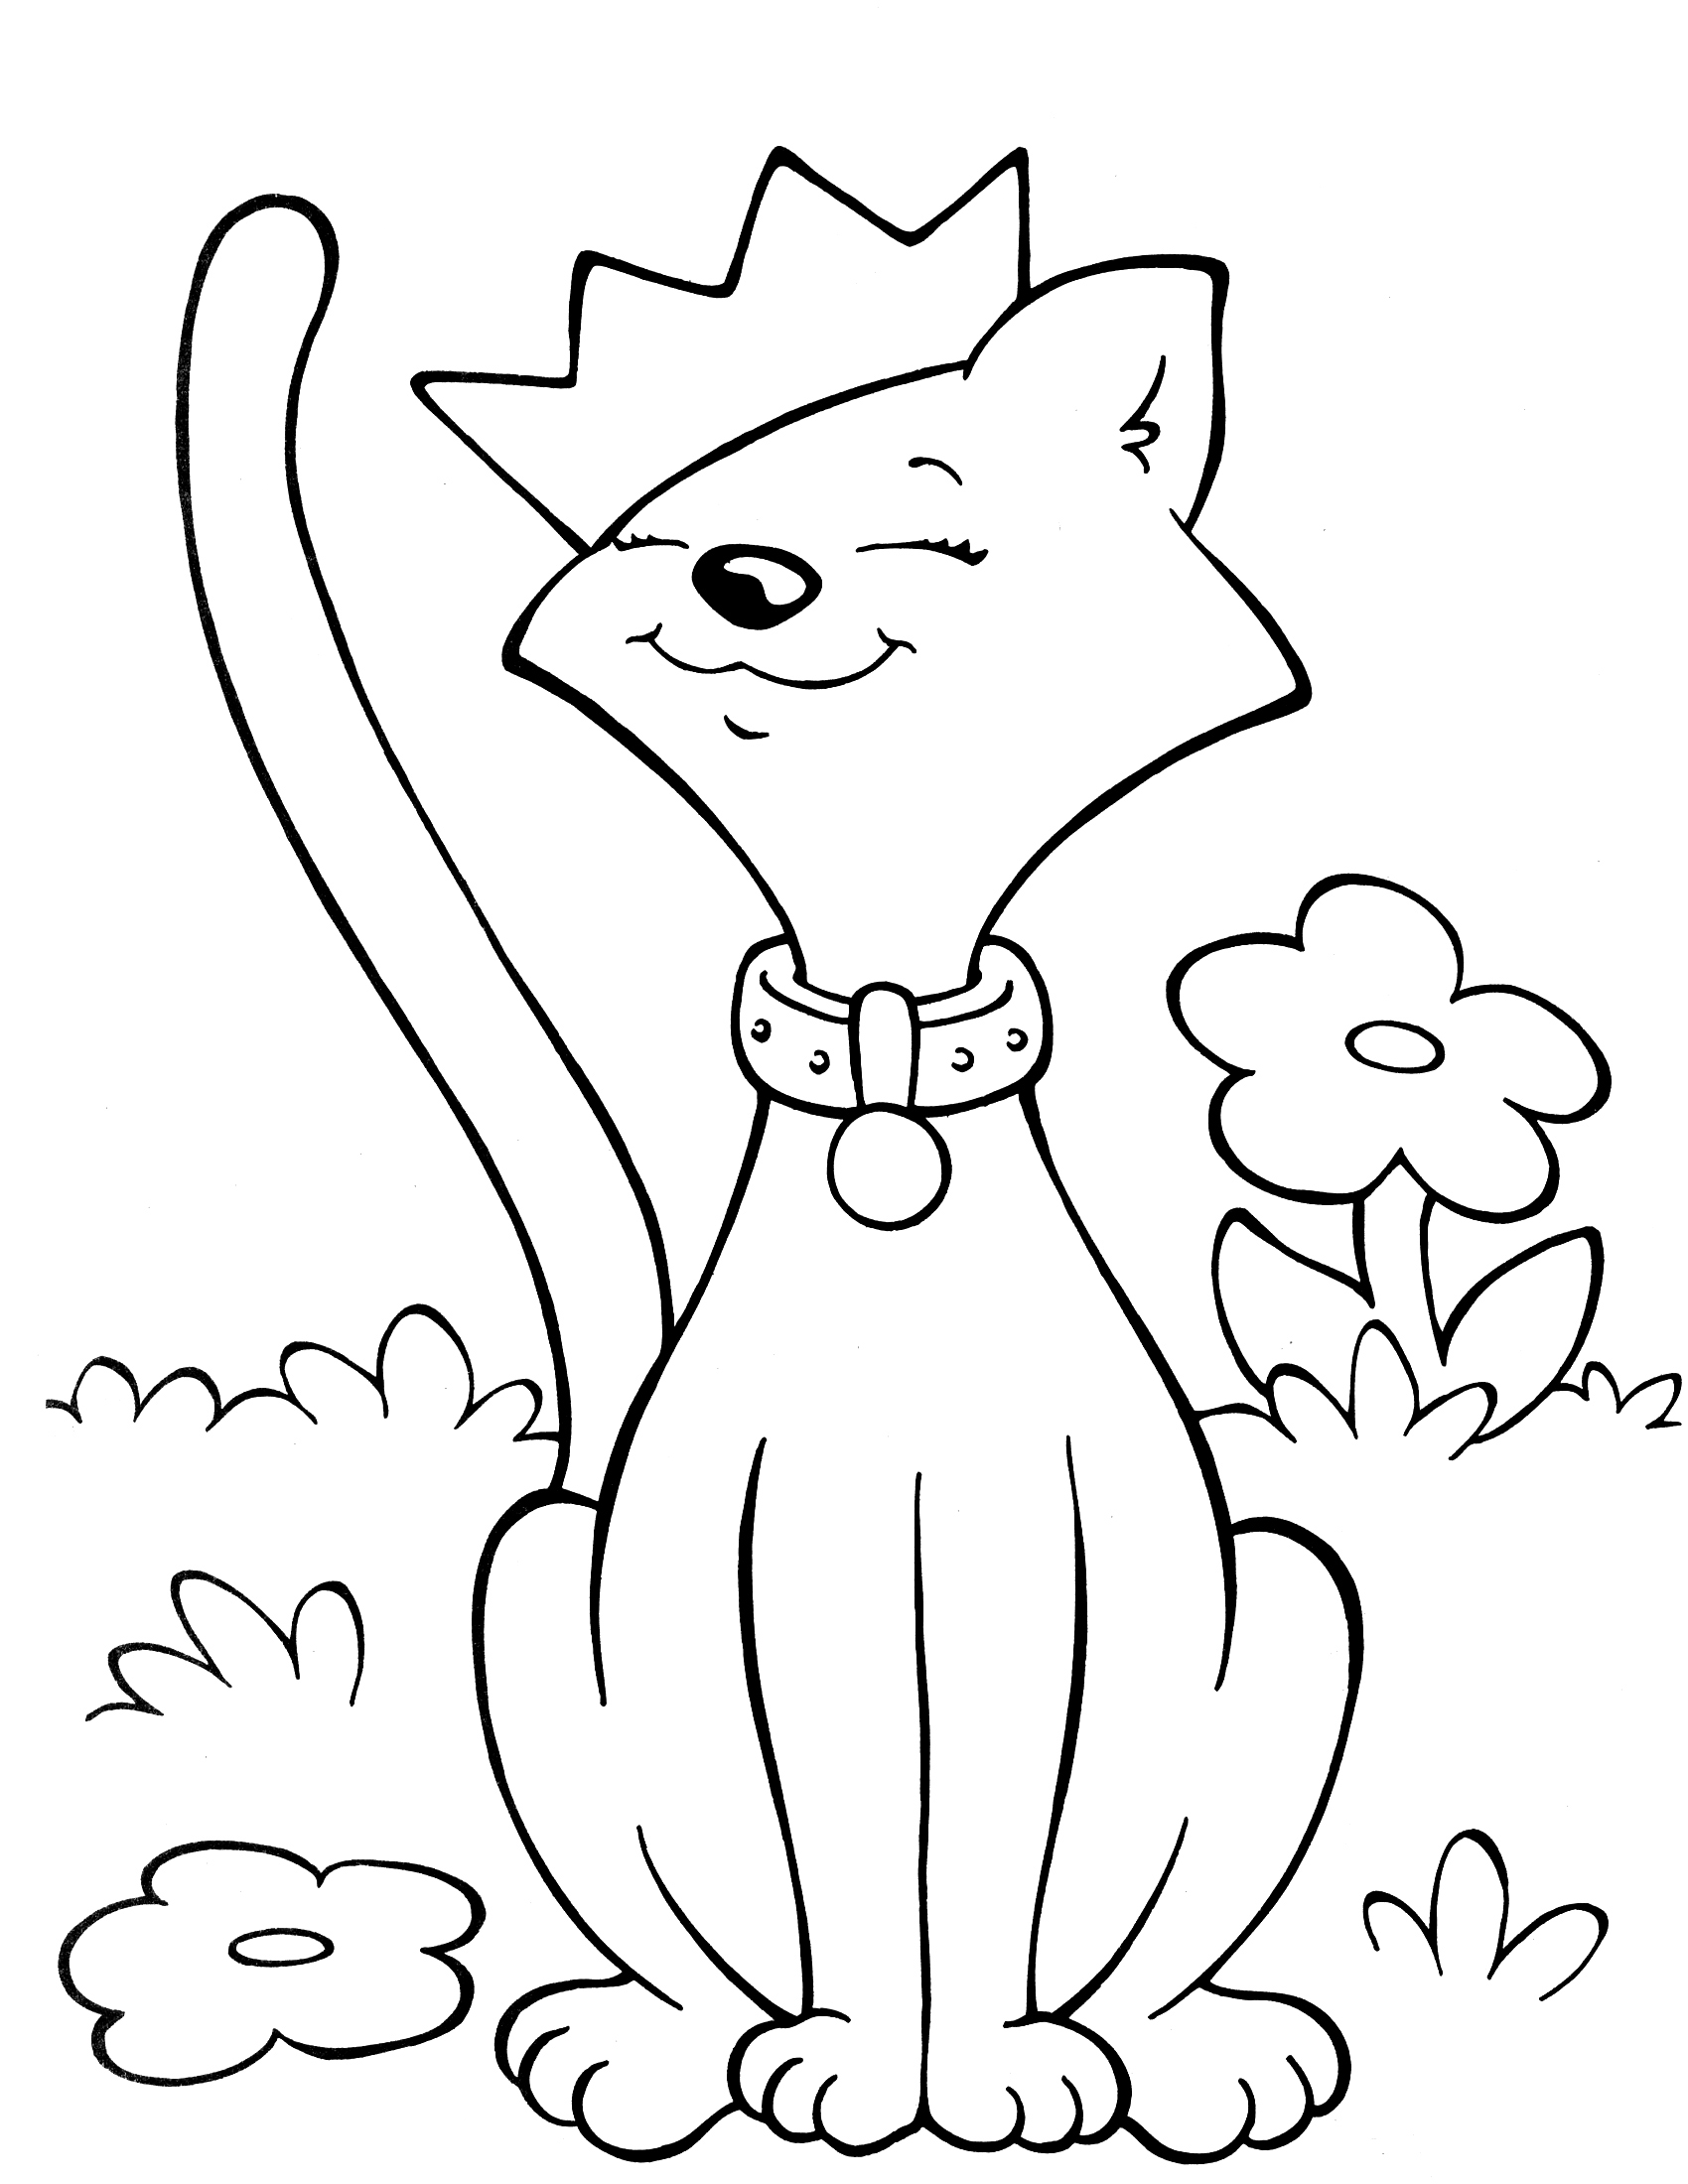 online crayola coloring pages - photo#3